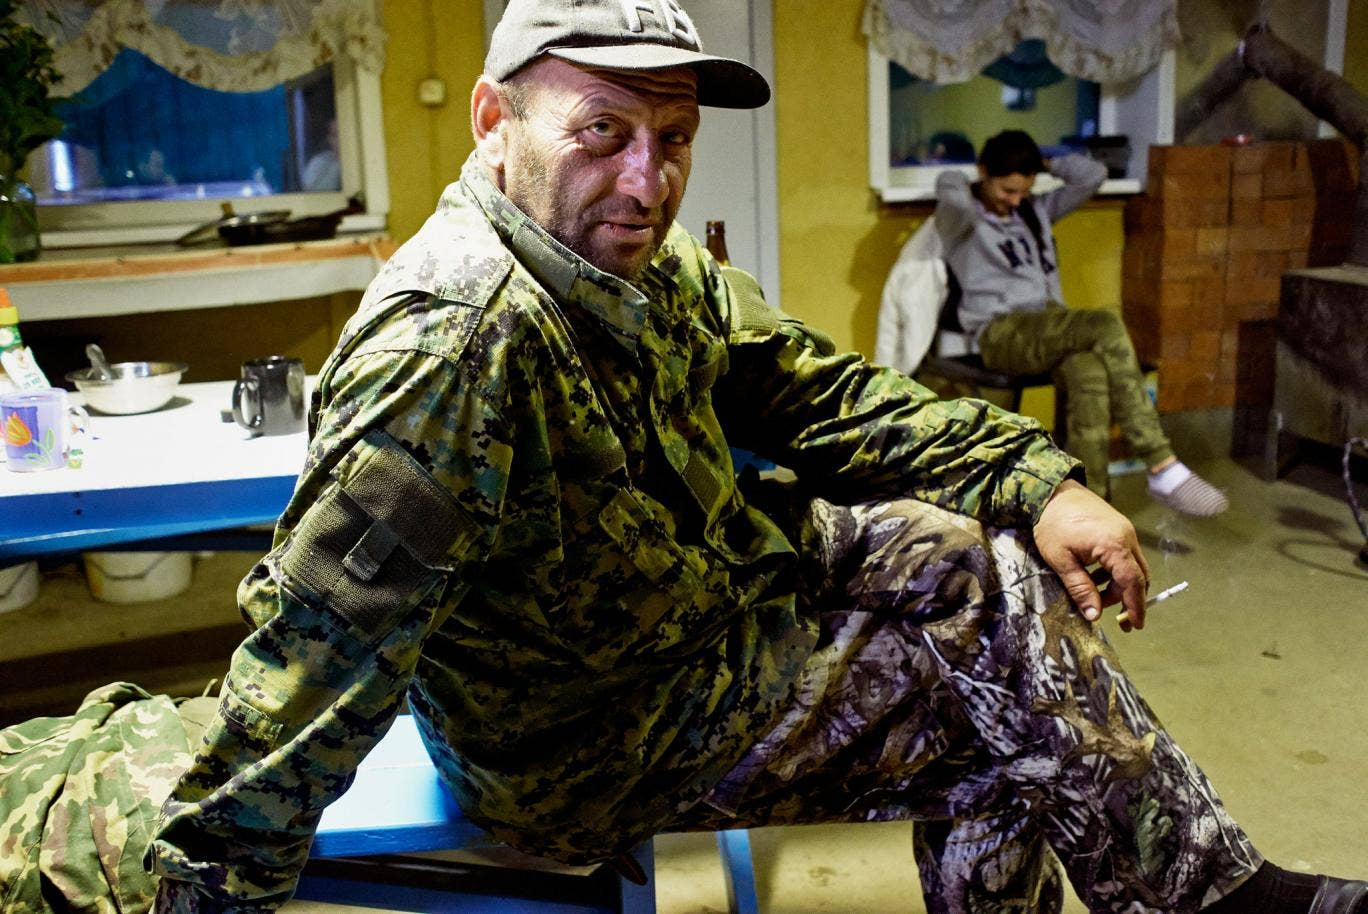 A Russian hunter at the Medved bear-hunting lodge in Siberia